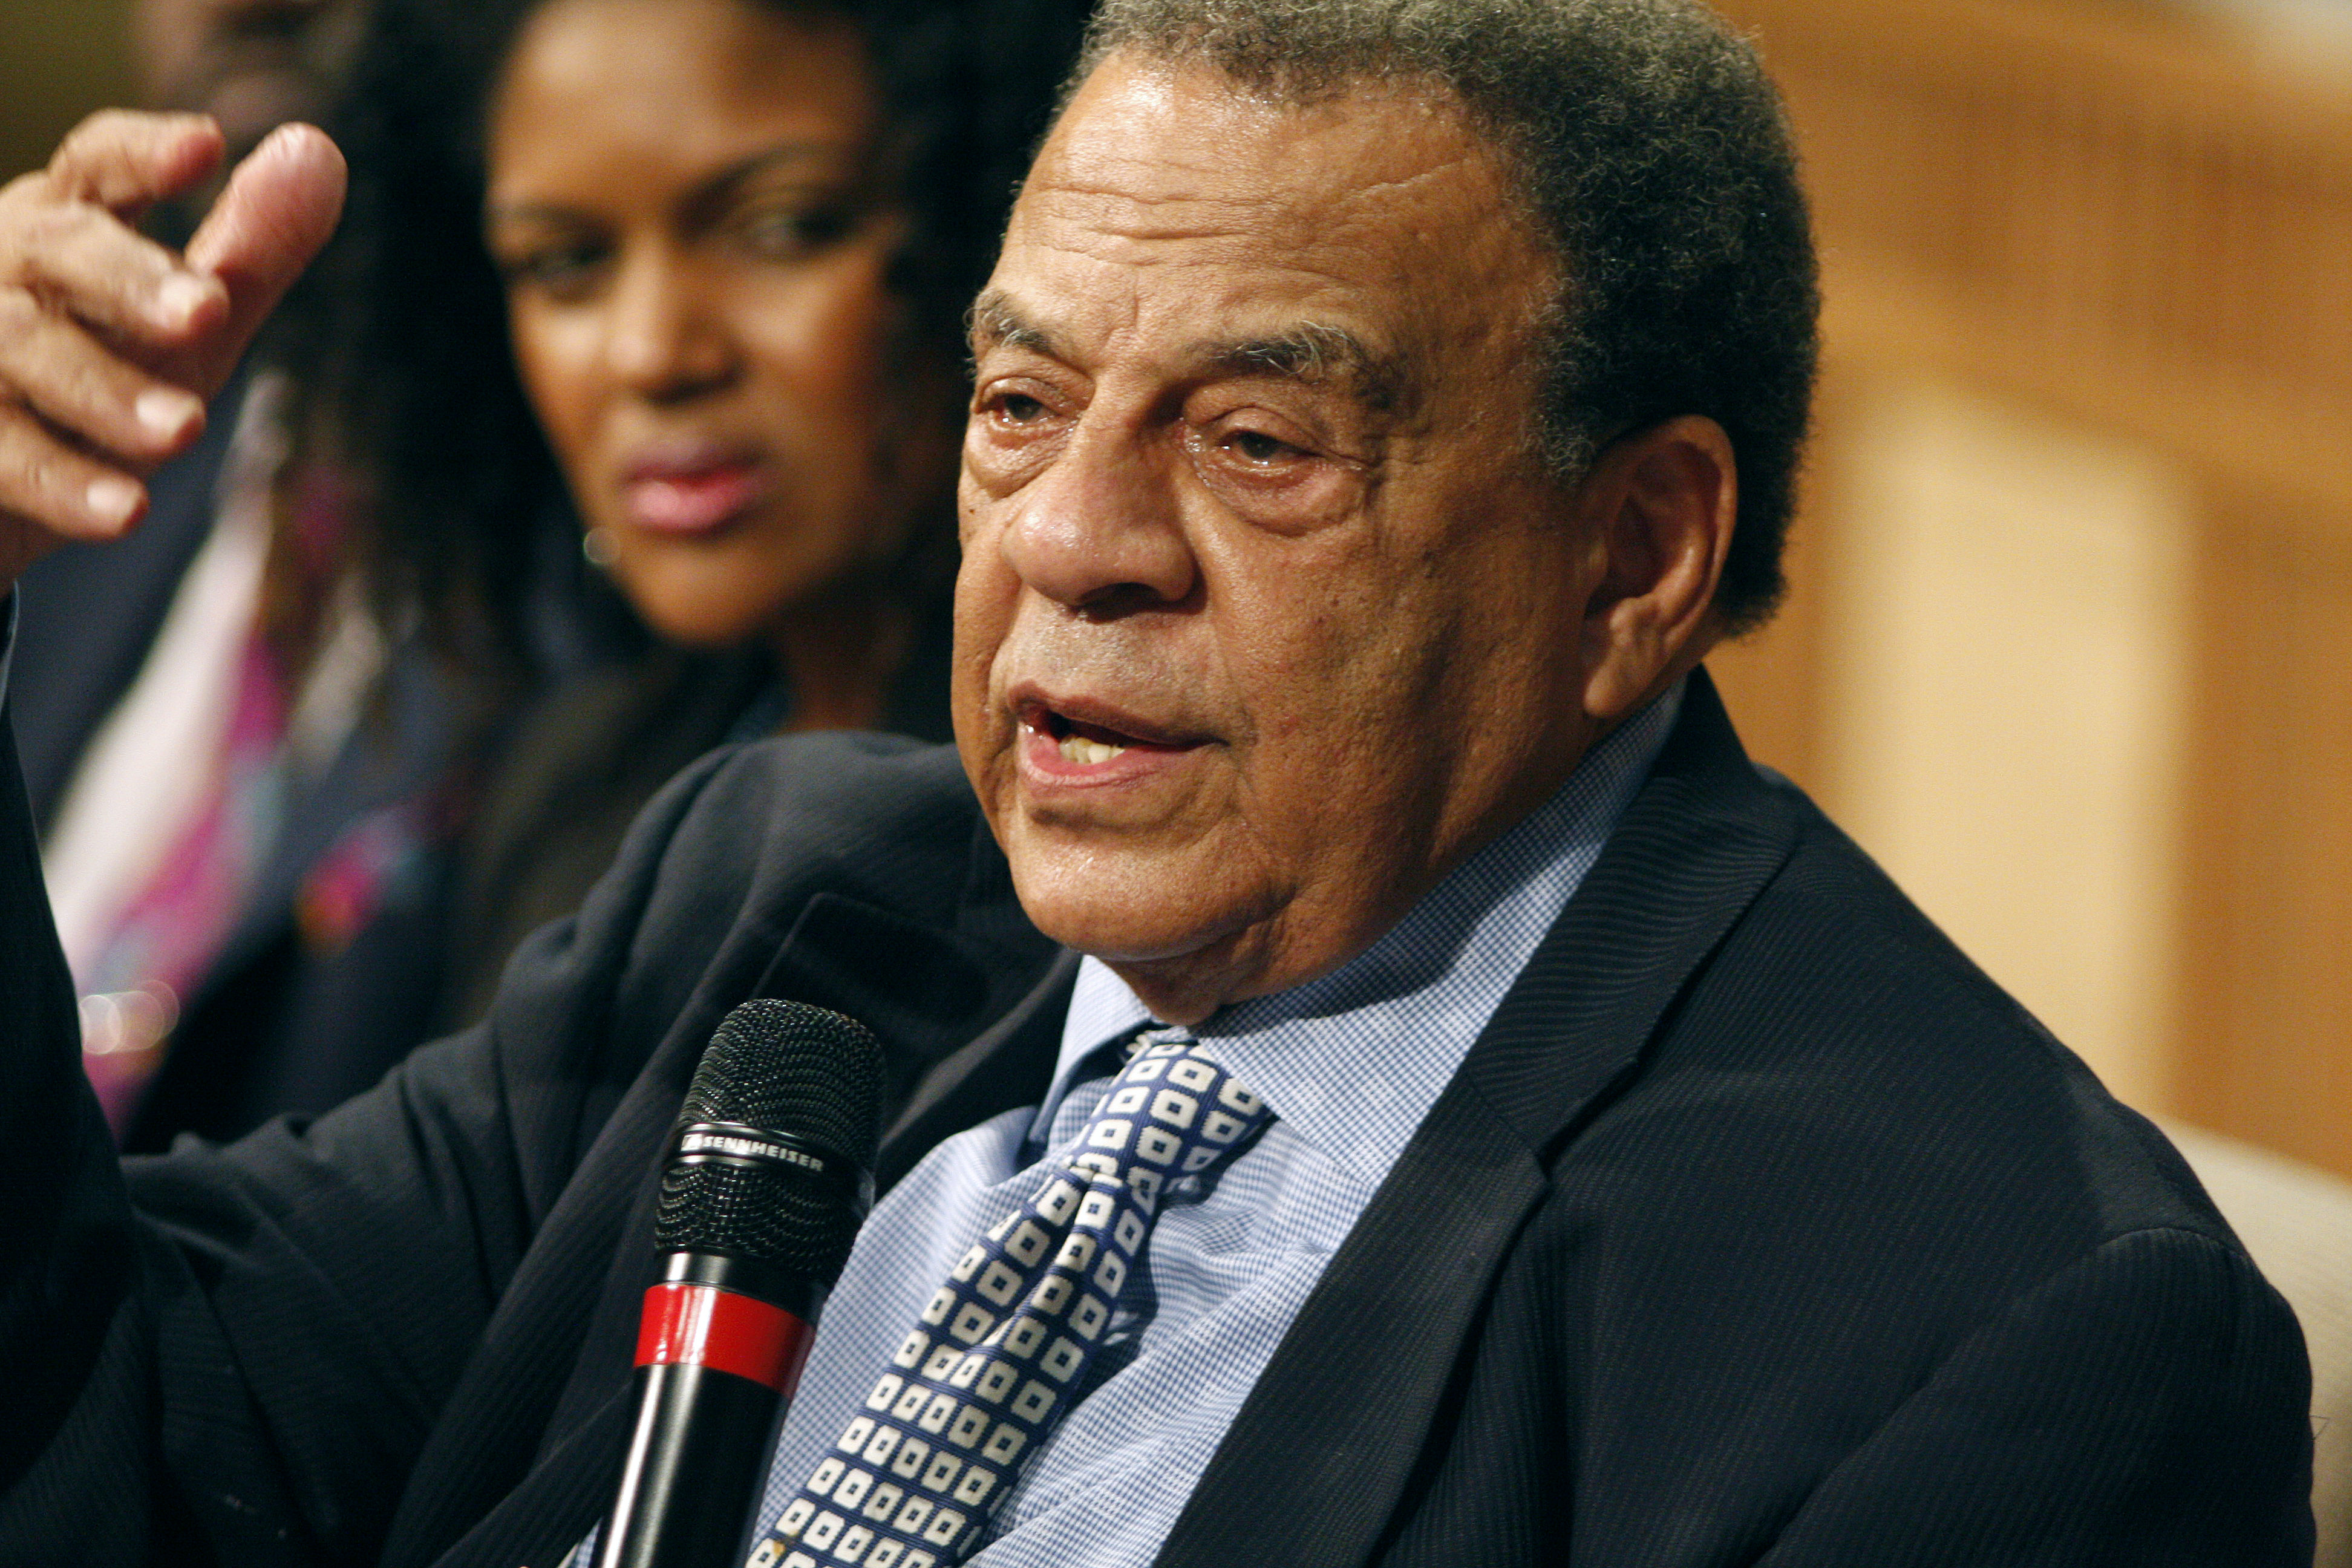 Civil rights leader Andrew Young gives the closing remarks during the national Prison Summit on Mass Incarceration sponsored by the United Methodist Strengthening the Black Church for the 21st Century at Concord Church of Dallas. Young has served as a member of Congress, mayor of Atlanta and U.S. ambassador to the United Nations. Photo by Kathy L. Gilbert, UMNS.